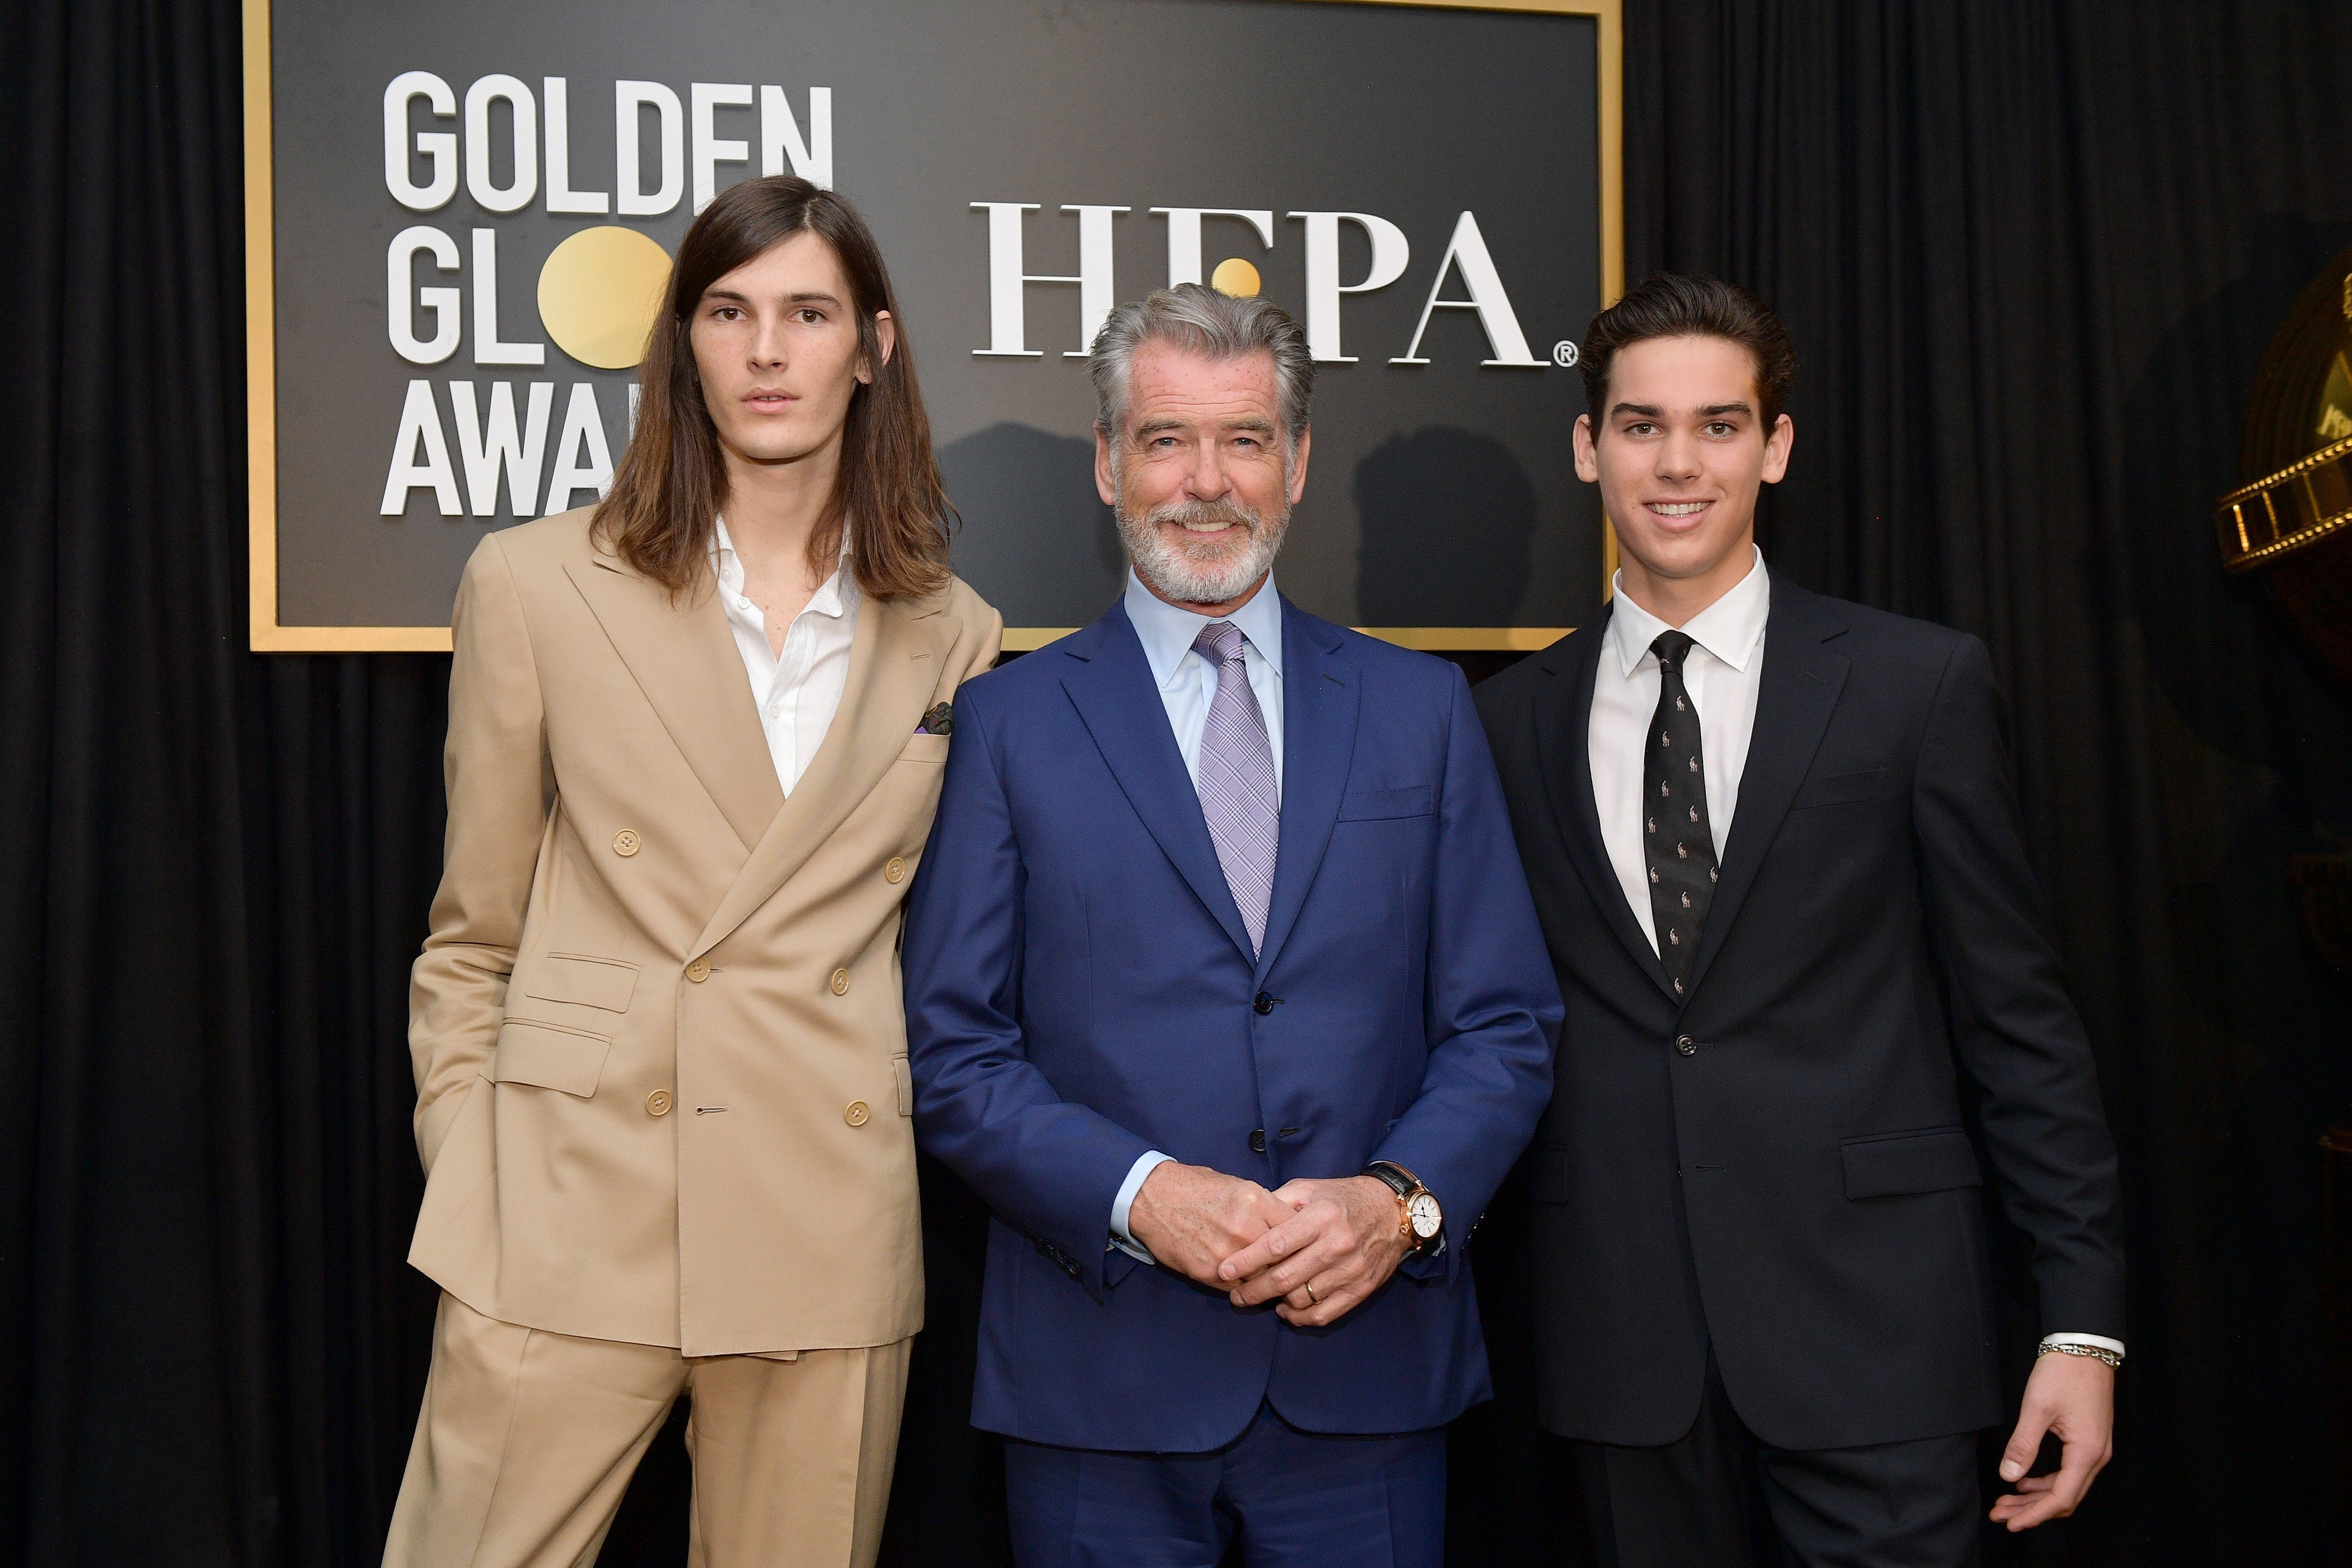 Pierce Brosnan (C) poses with Golden Globe Ambassadors Dylan Brosnan (L) and Paris Brosnan onstage during the Hollywood Foreign Press Association and The Hollywood Reporter Celebration of the 2020 Golden Globe Awards Season. | Source: Getty Images.